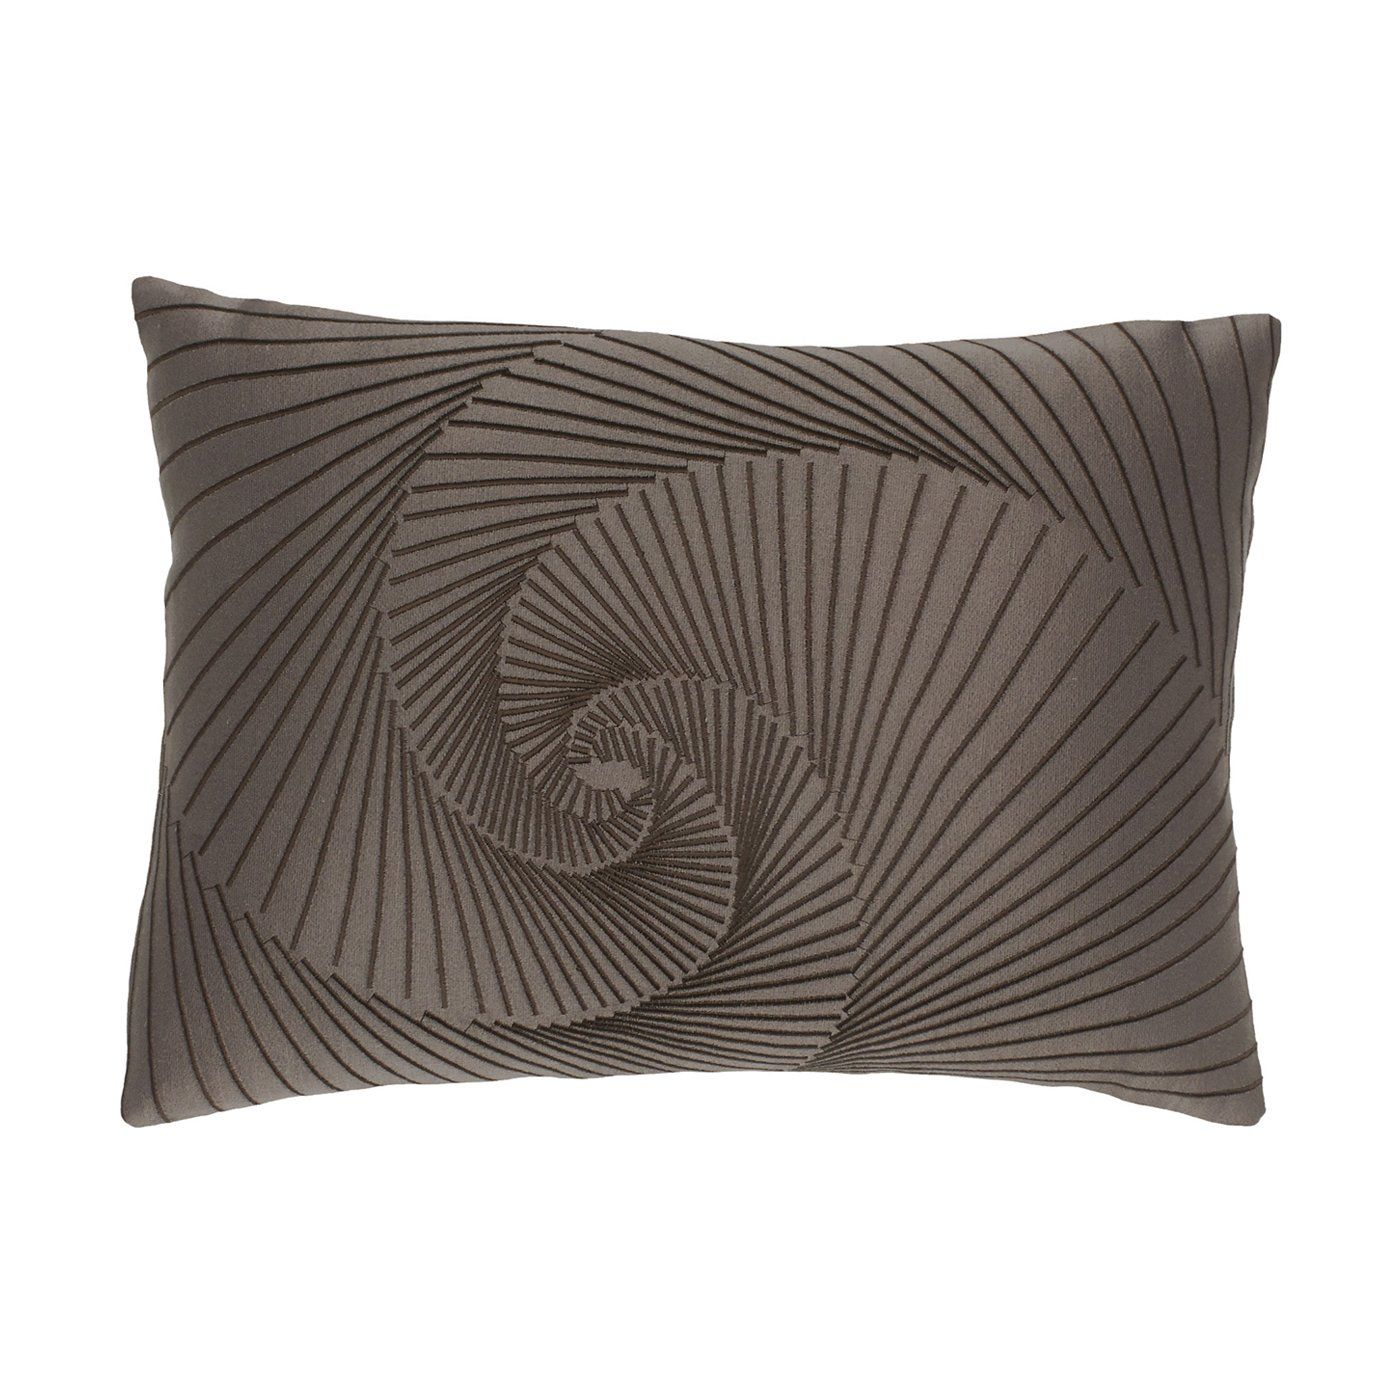 Modern Living by WestPoint Home 1C94440 Mercer 12-in x 18-in Spiral Embroidery Pillow ATG ...